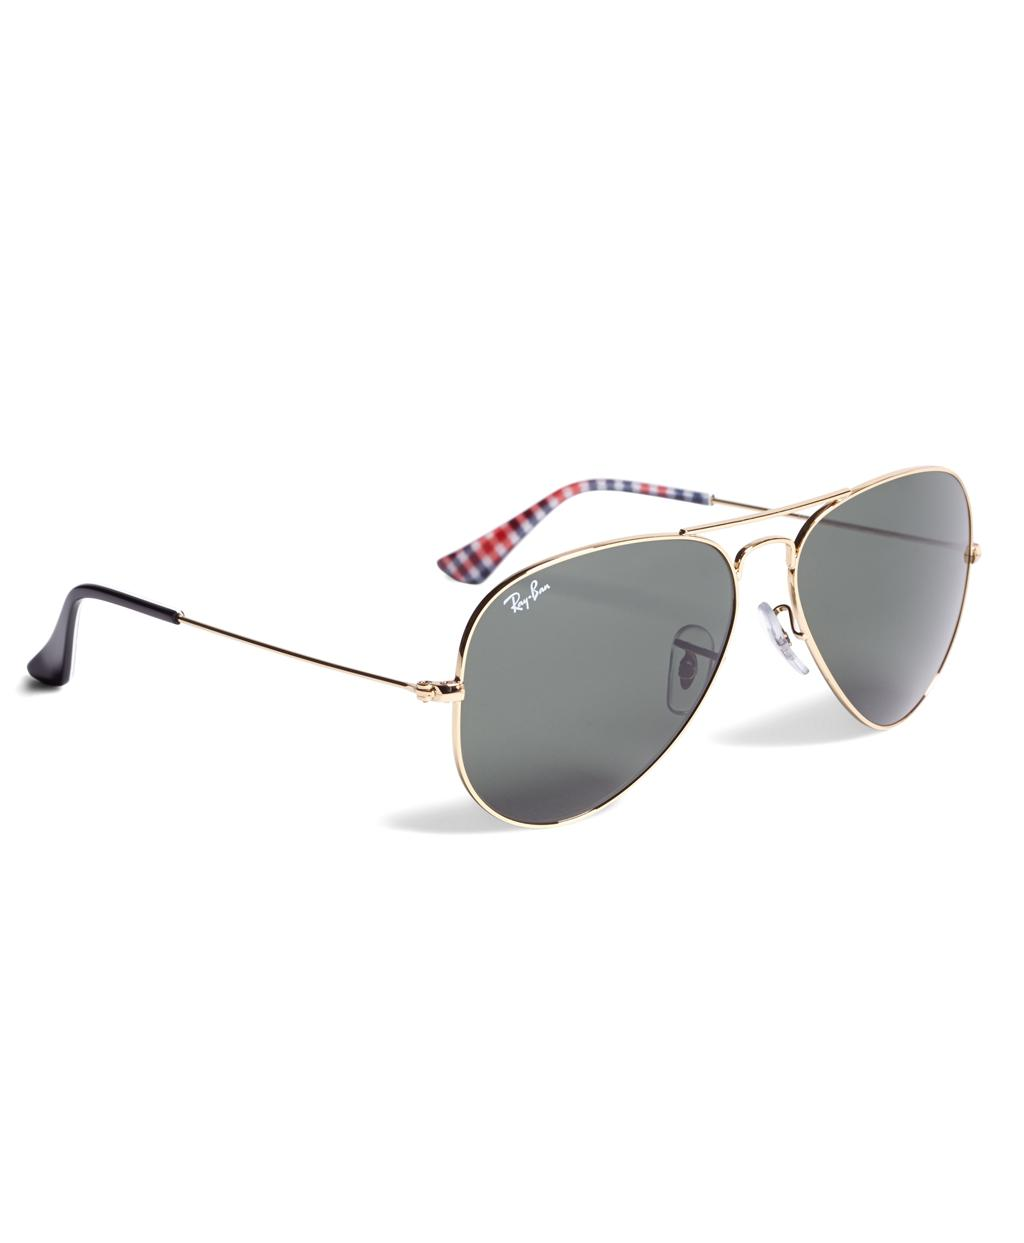 9d5e30718a Lyst - Brooks Brothers Ray-ban® Aviator Sunglasses With Gingham in ...